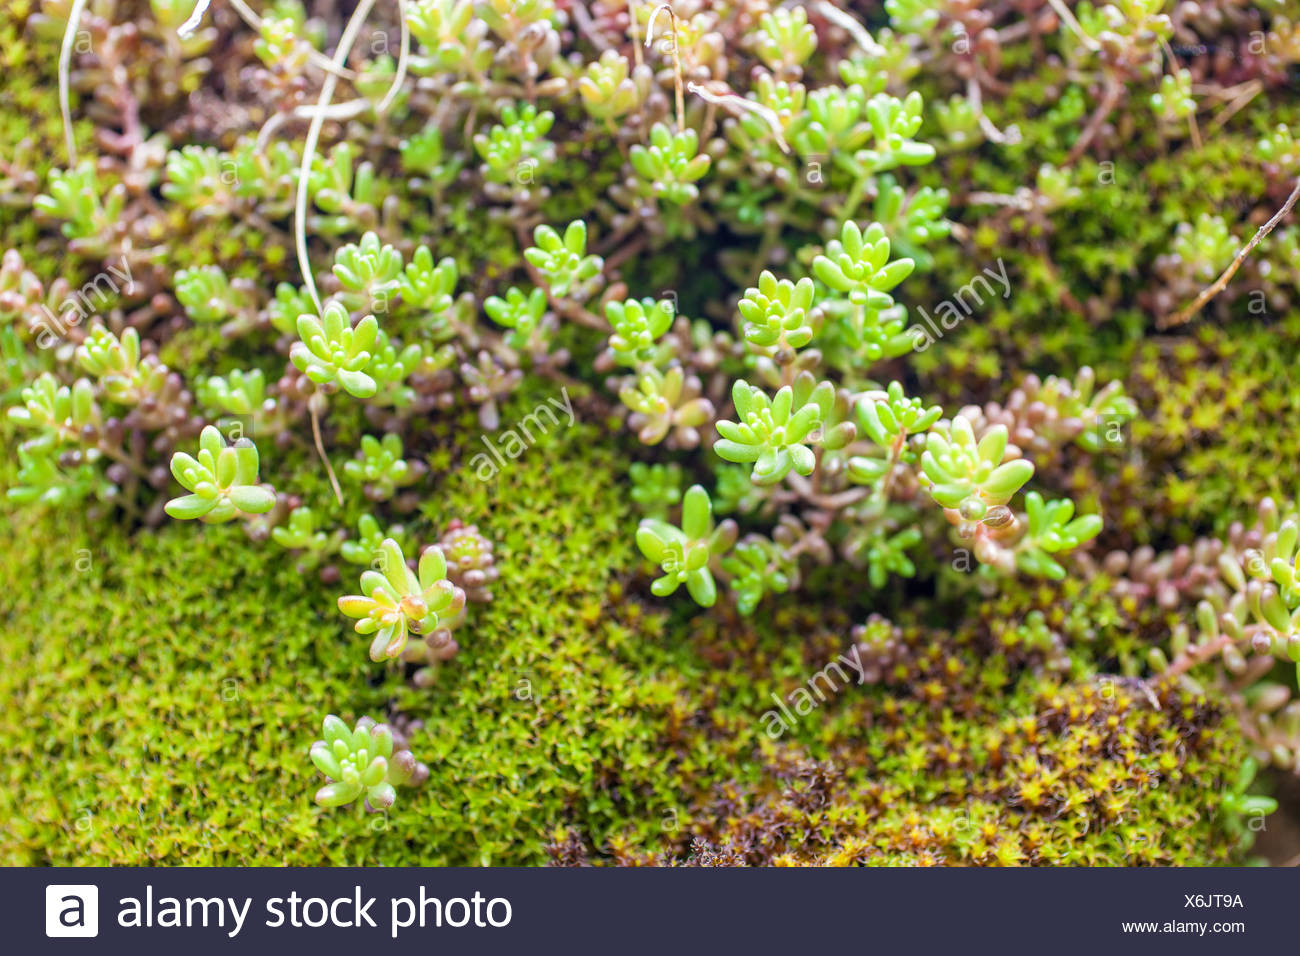 Plante Grasse Bord De Mer Succulents On Rocks Photos Succulents On Rocks Images Alamy